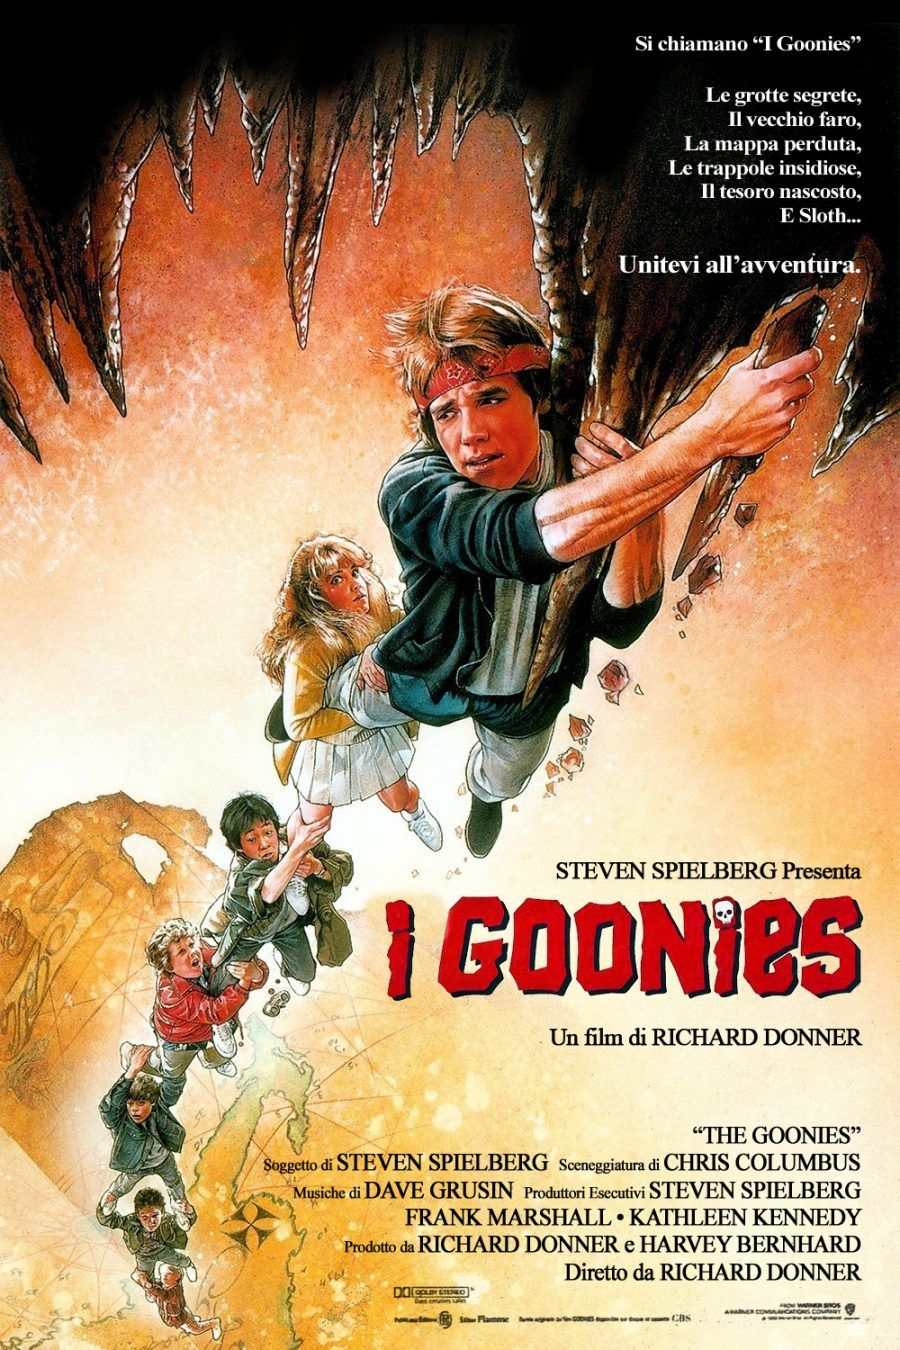 I Goonies Streaming Film E Serie Tv In Altadefinizione Hd Goonies Film D Avventura Avventura